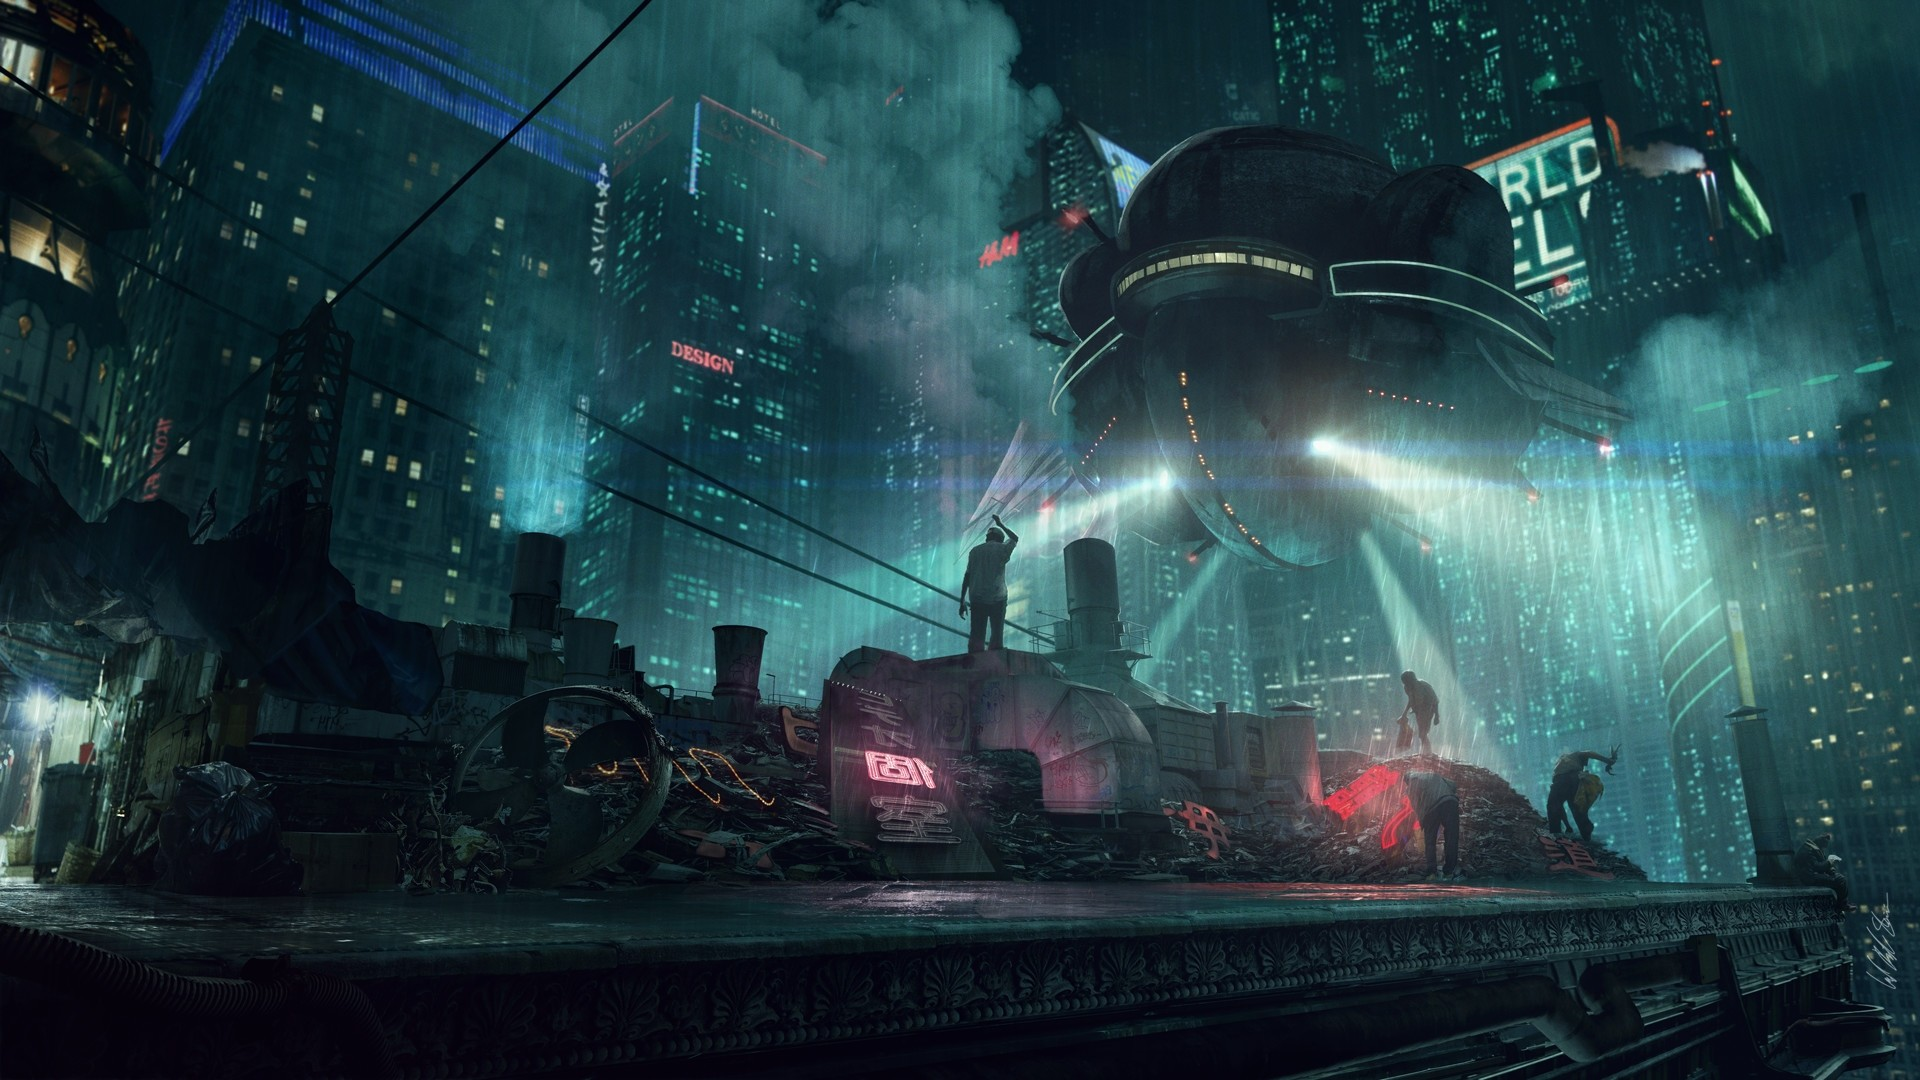 1920x1080 Raining in a cyberpunk city [x-post from /r/wallpapers] ...